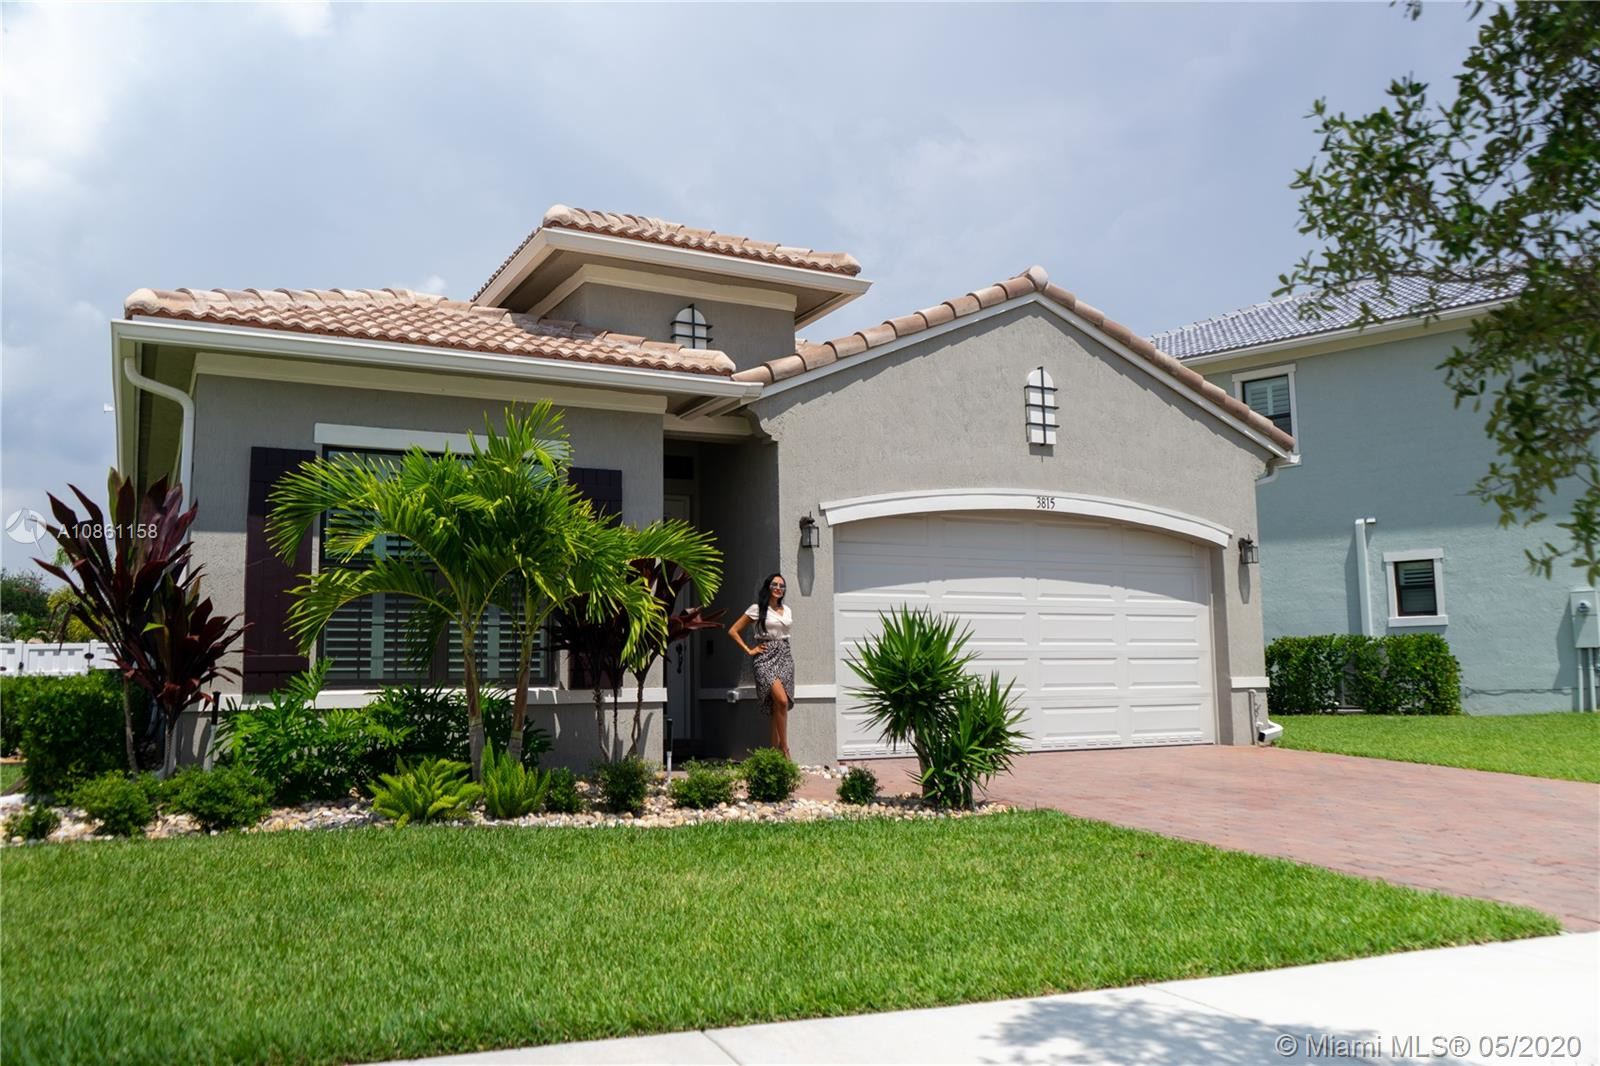 3815 NW 89th Way, Coral Springs, FL 33065 - #: A10861158